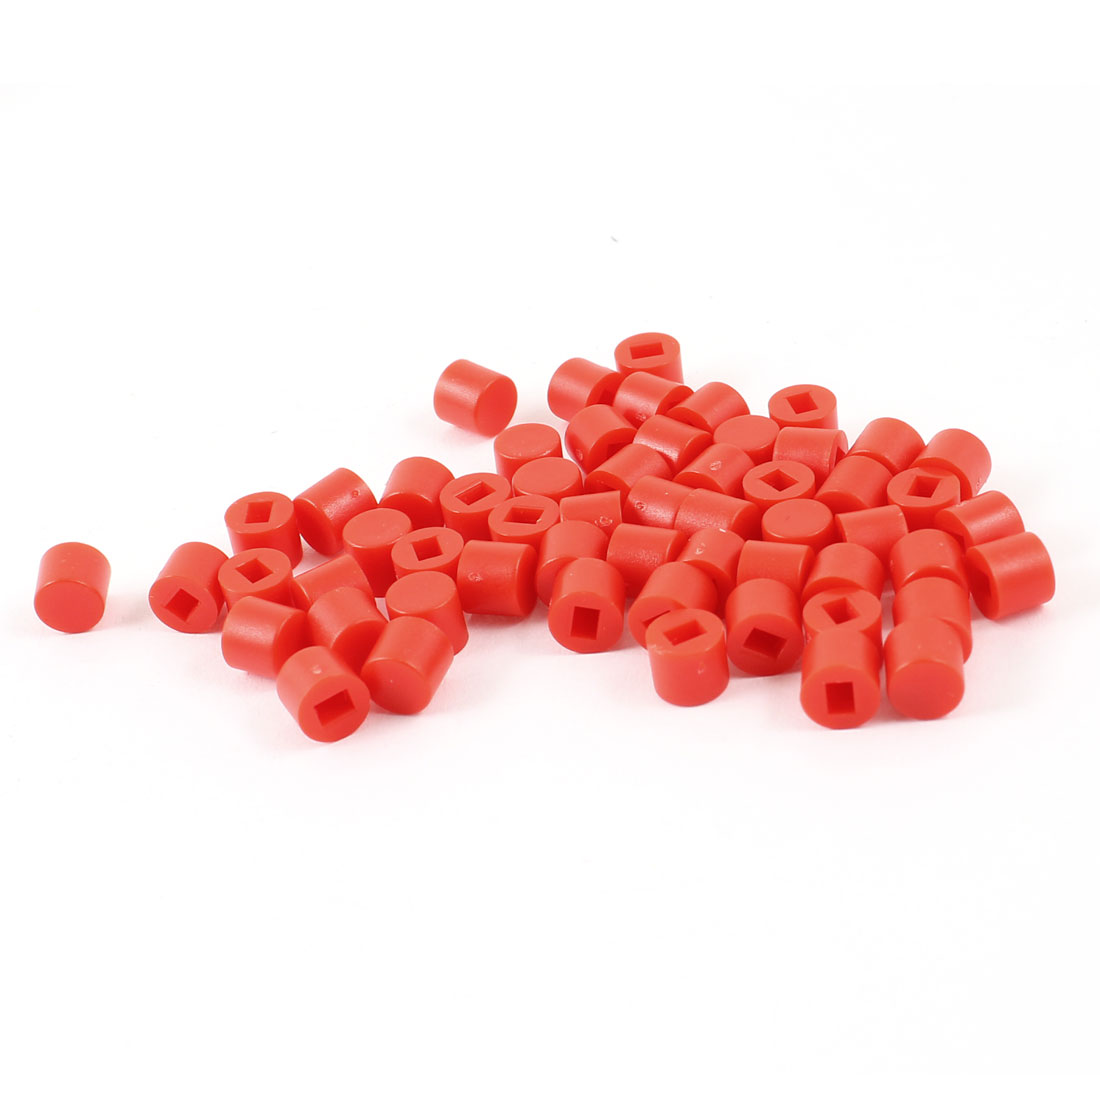 55 Pcs Round Micro Tactile Pushbutton Caps Keycaps Covers Protector Red